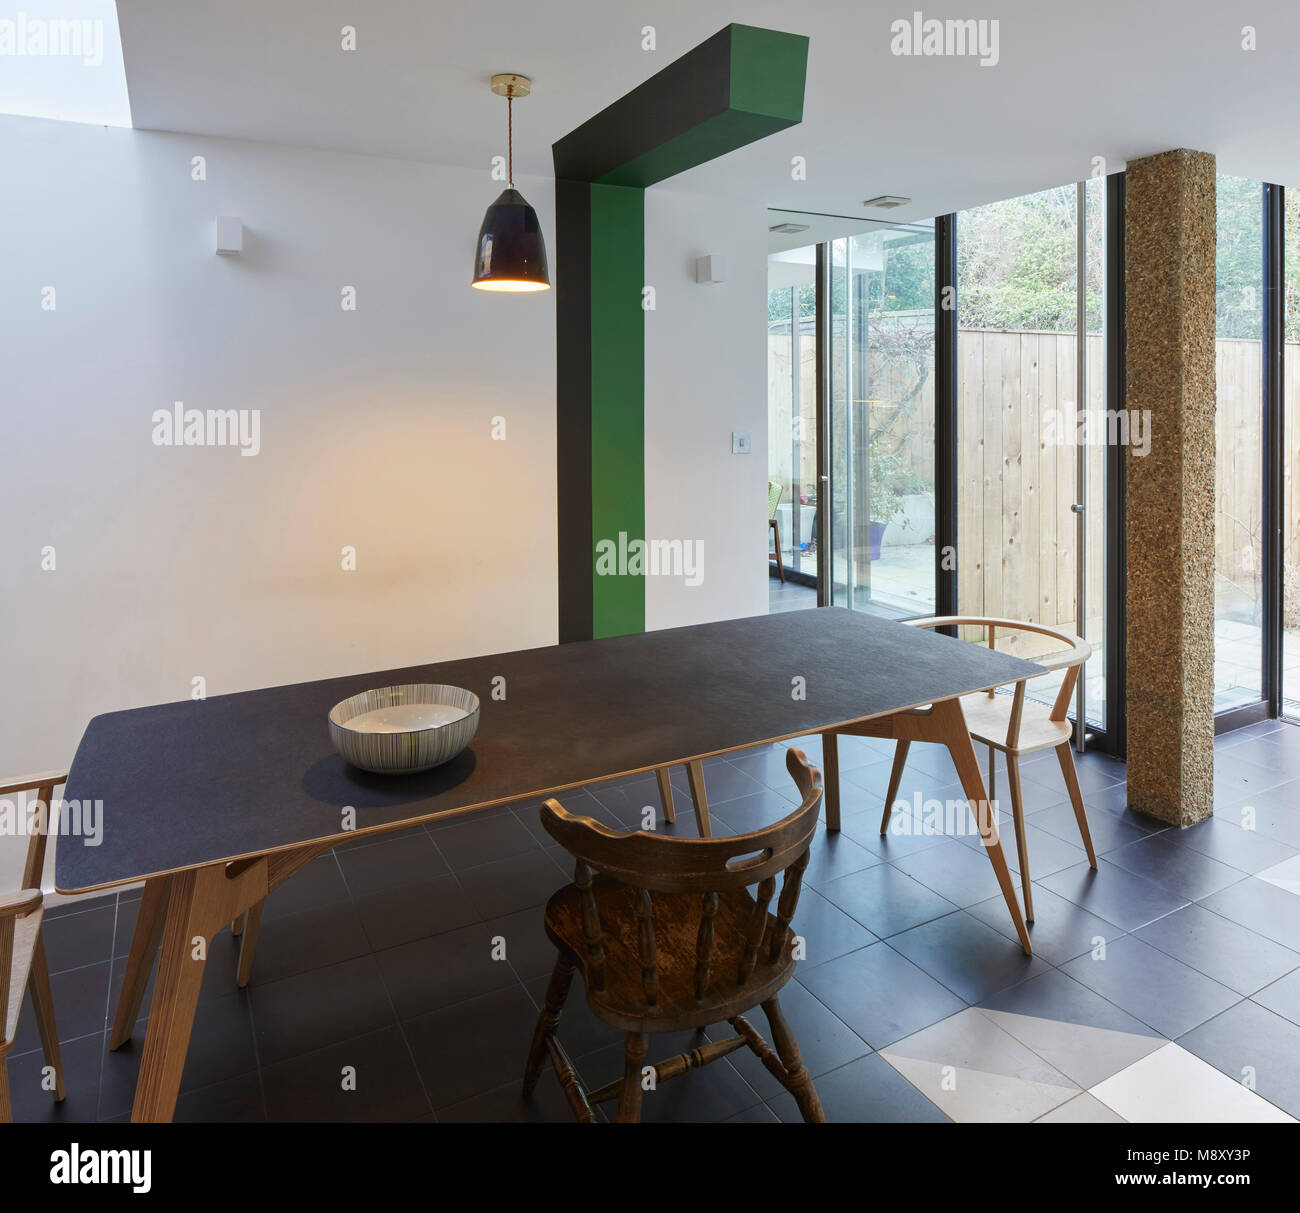 Overall interior view. Sean Griffiths, London, United Kingdom. Architect: Sean Griffiths , 2018. - Stock Image